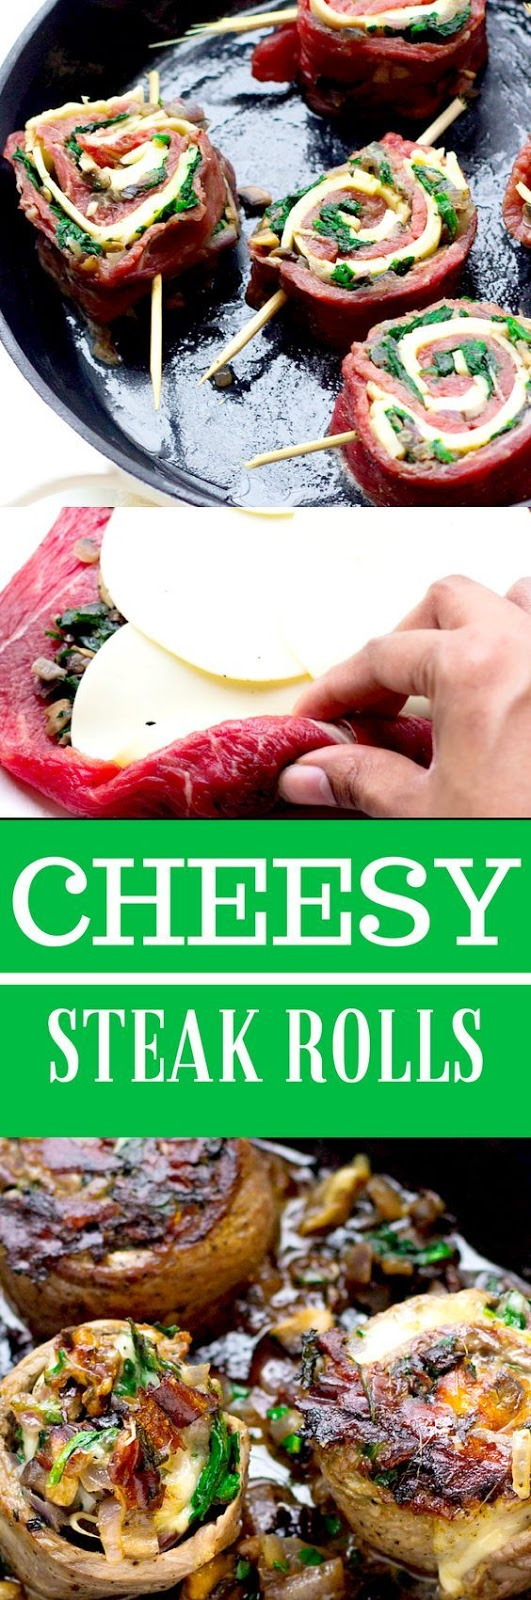 QUICK CHEESY CRUSTED SPINACH AND MUSHROOM STEAK ROLLS